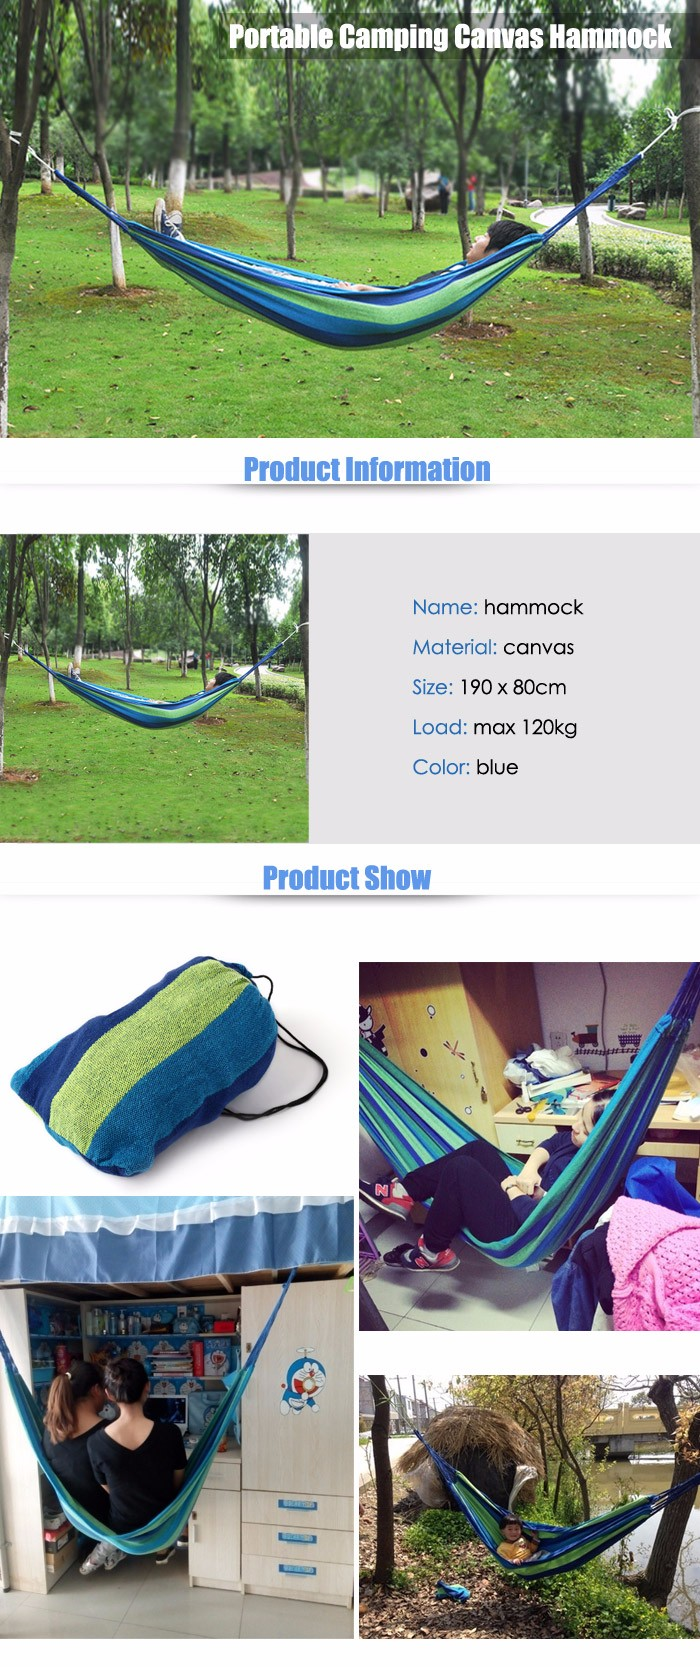 Durable Camping Canvas Hammock with 120KG Loading